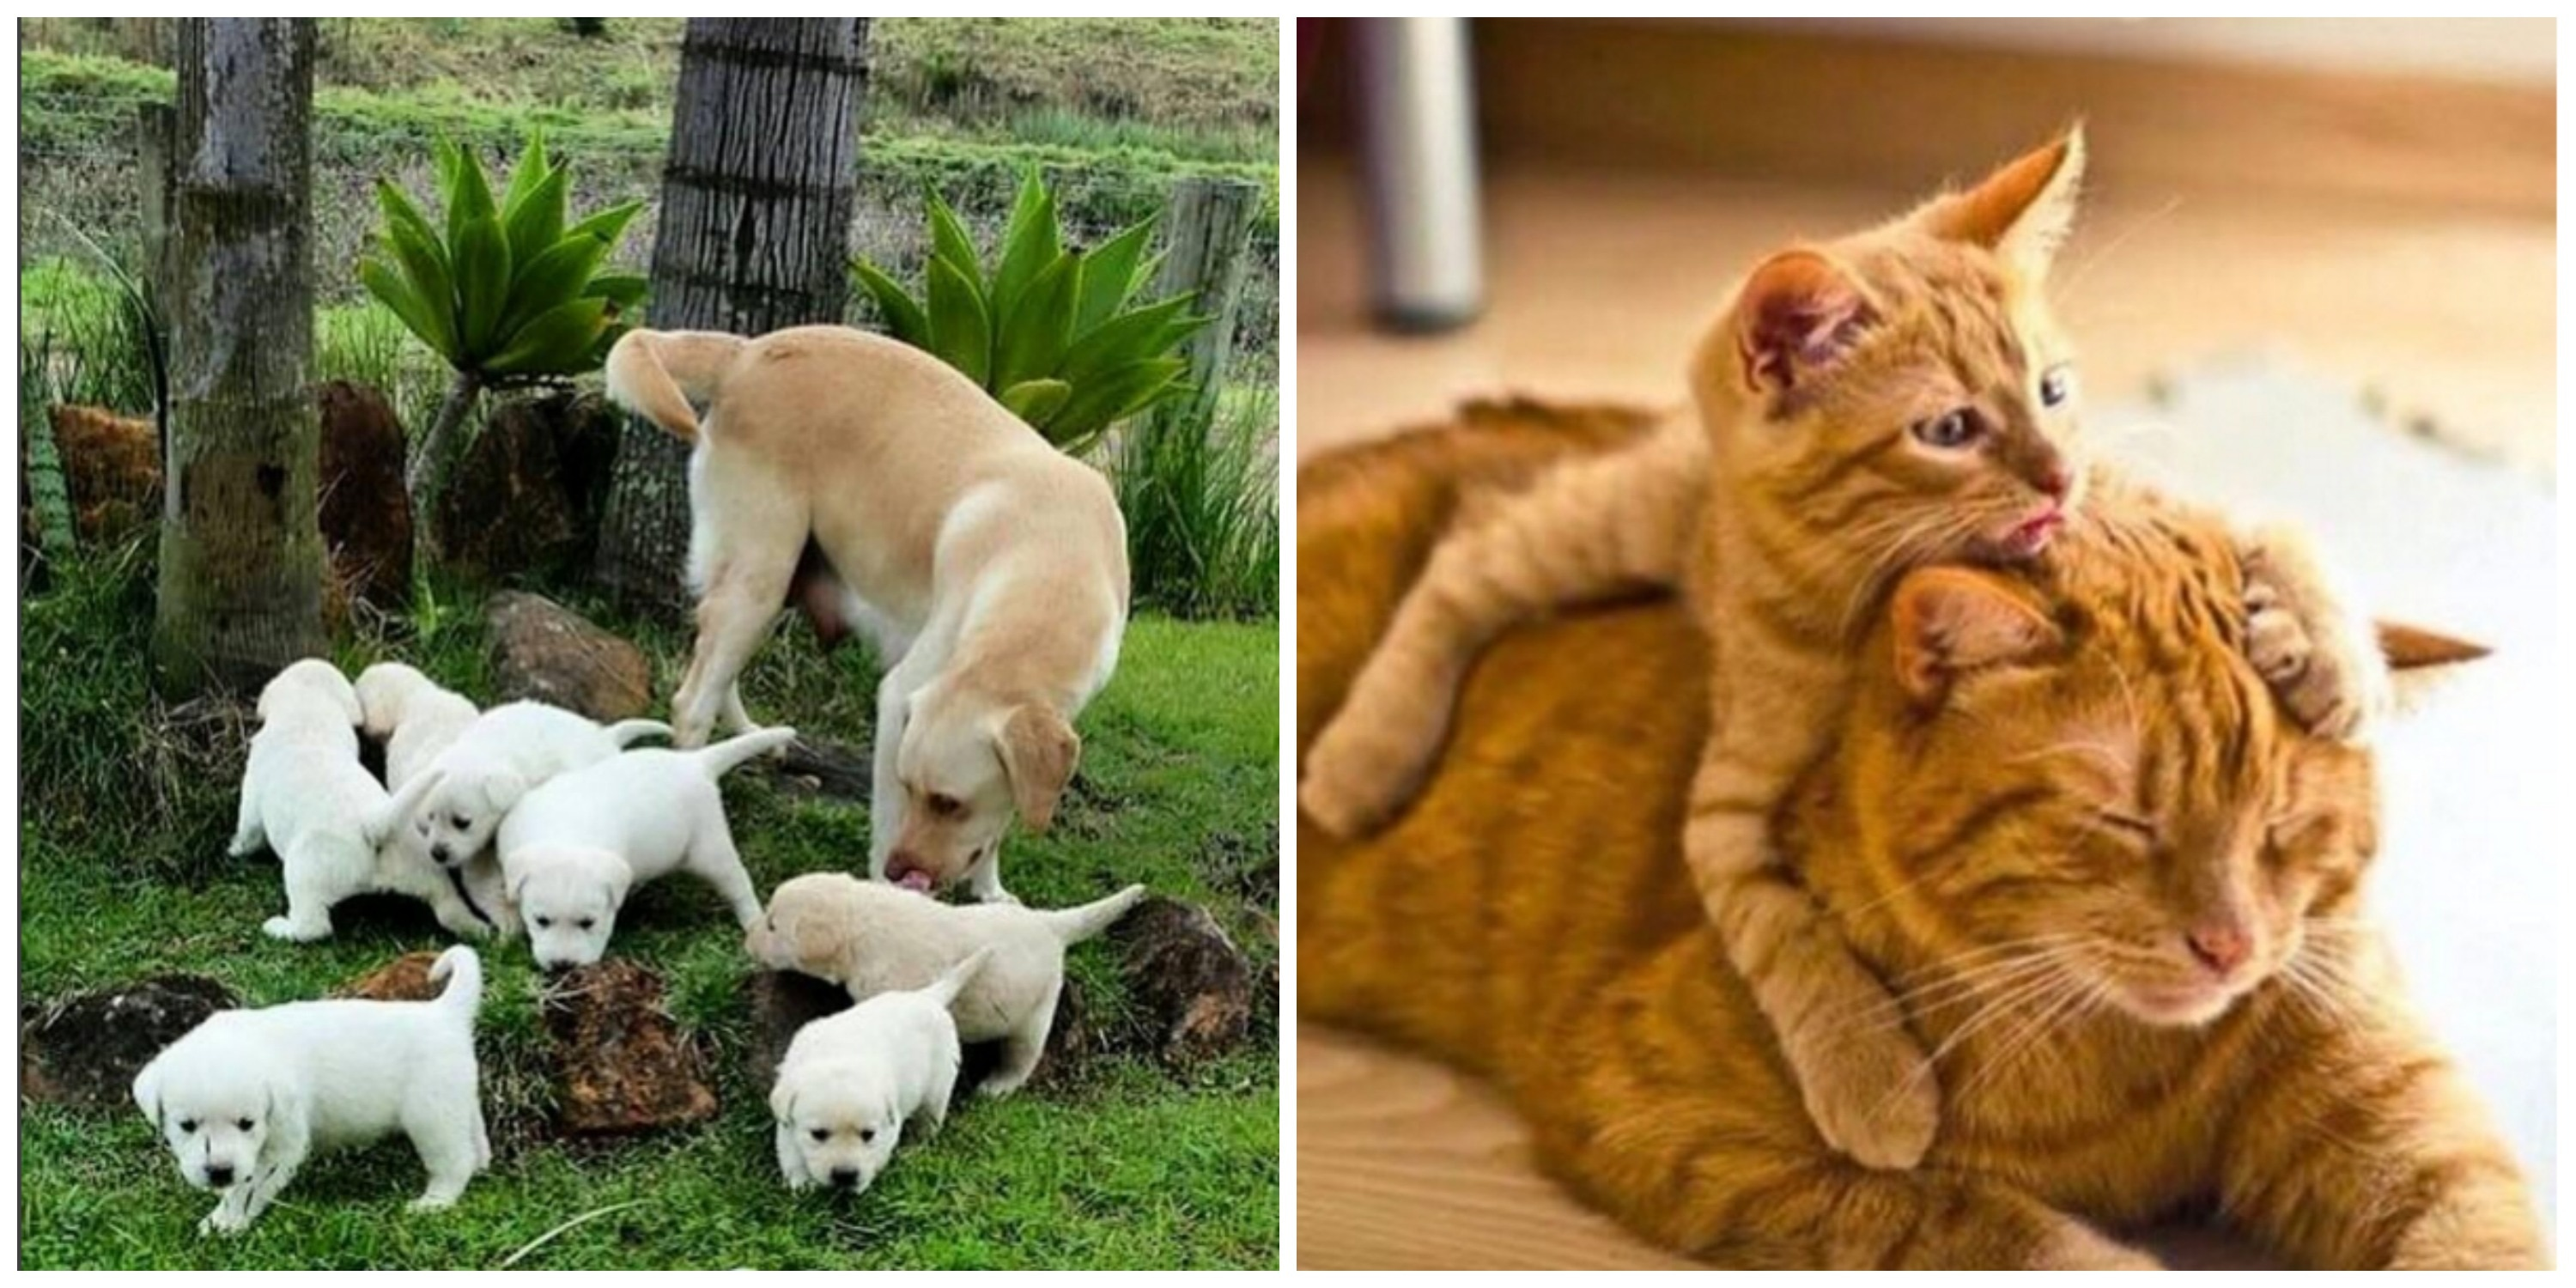 12 Pictures Of Animals With Their Babies That Will Melt